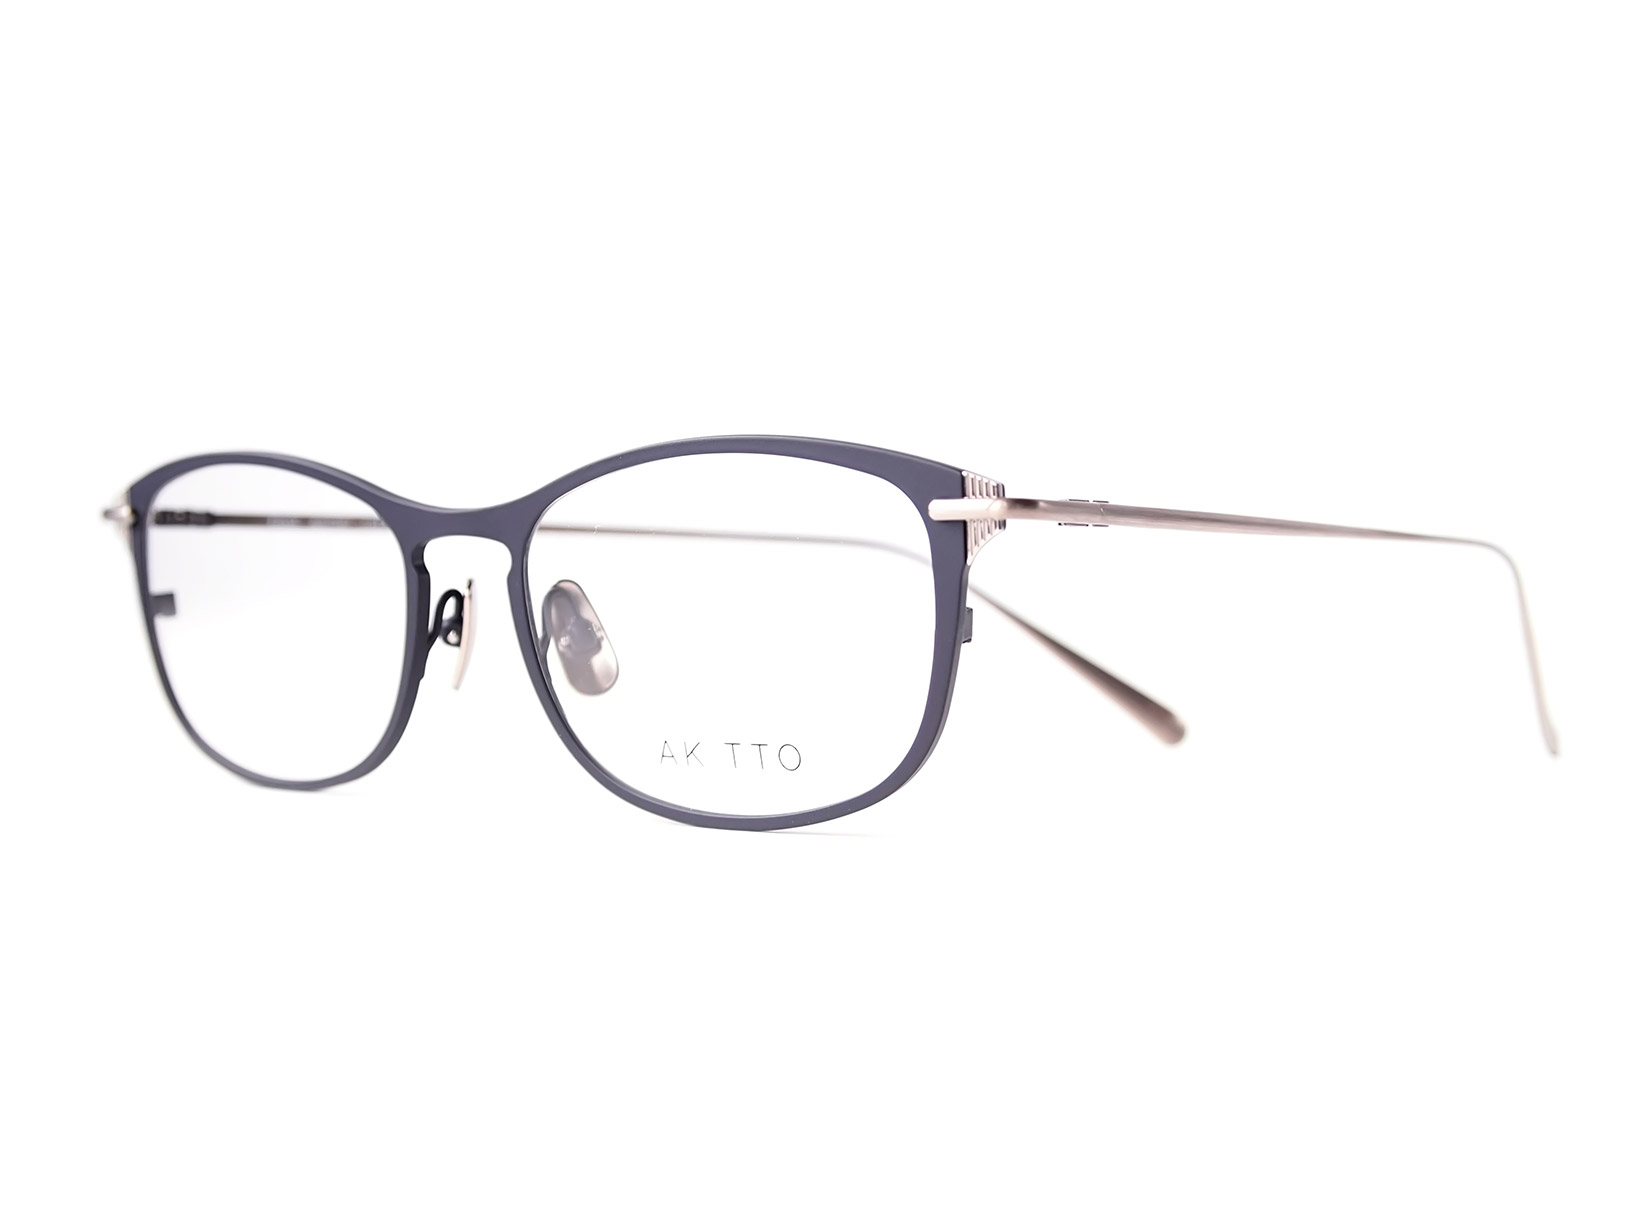 AKITTO 2016-3rd tip2 color NV size:53□17 material:titanium price:44,500-(+tax)